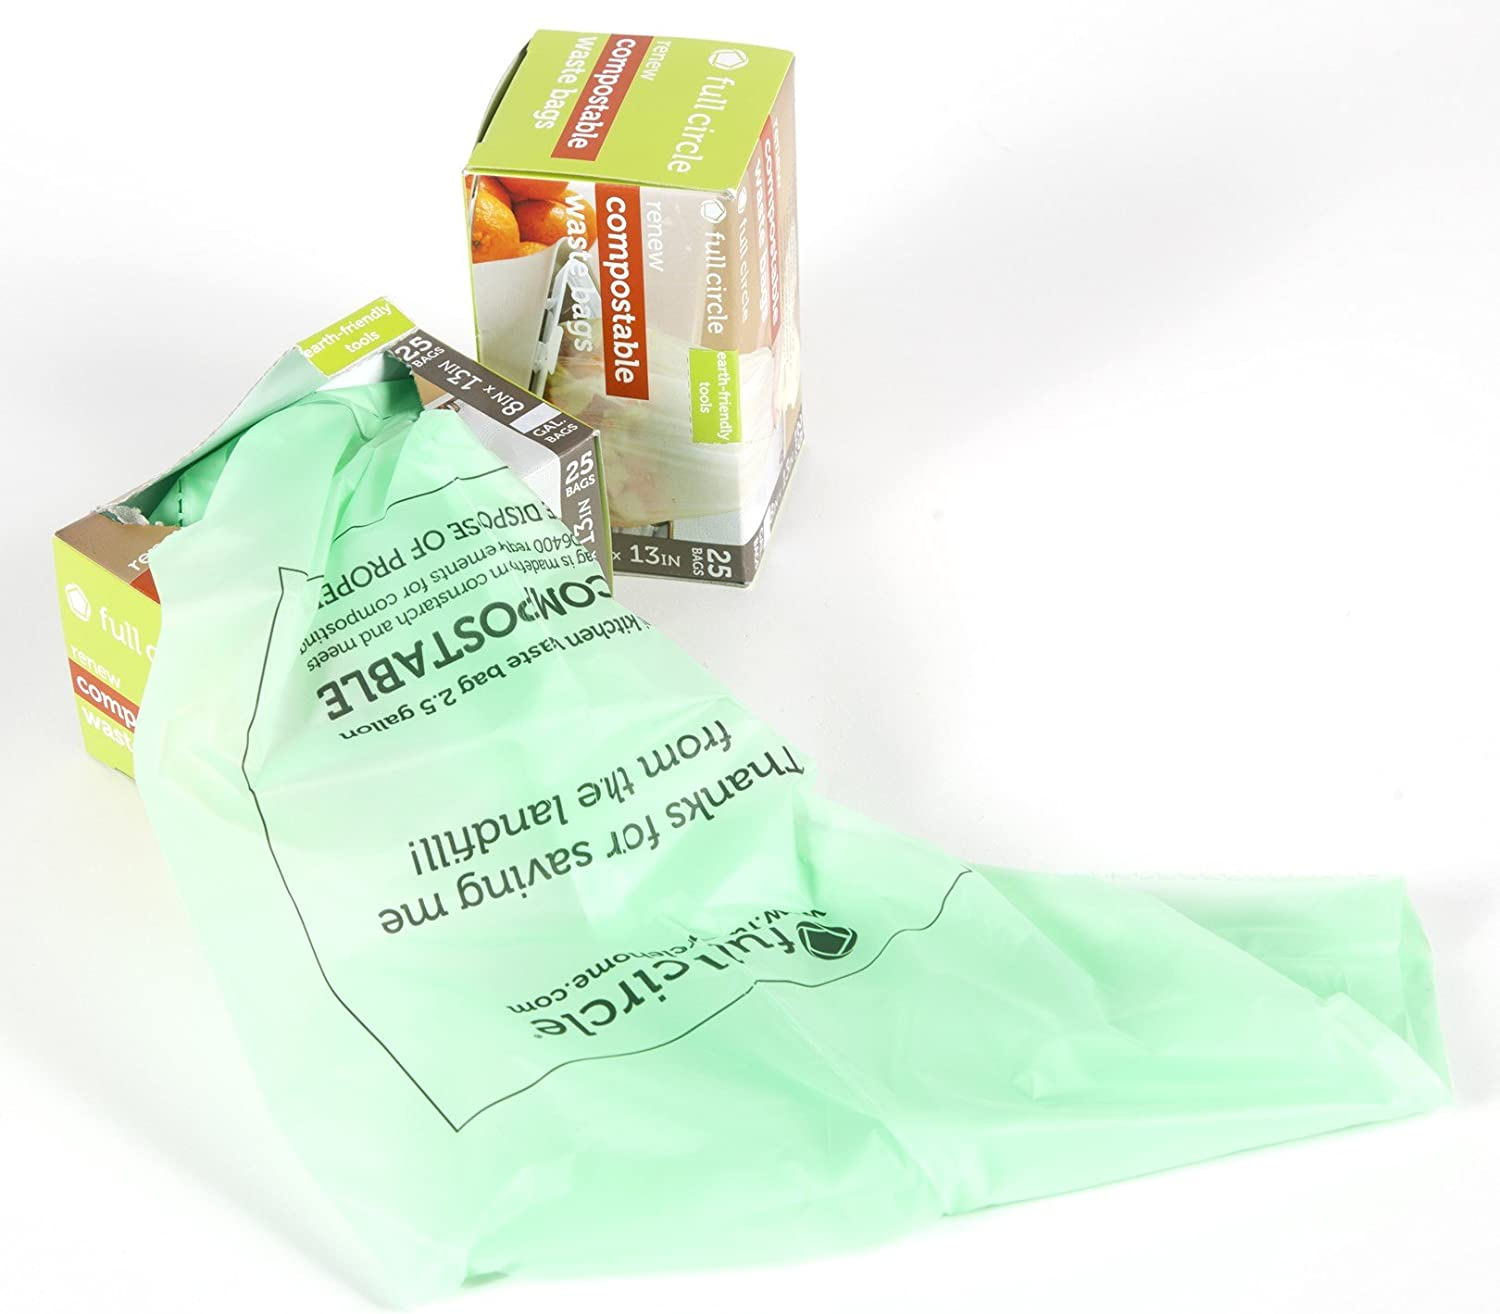 Full Circle FC11303 Compostable Waste Bags 25 Count